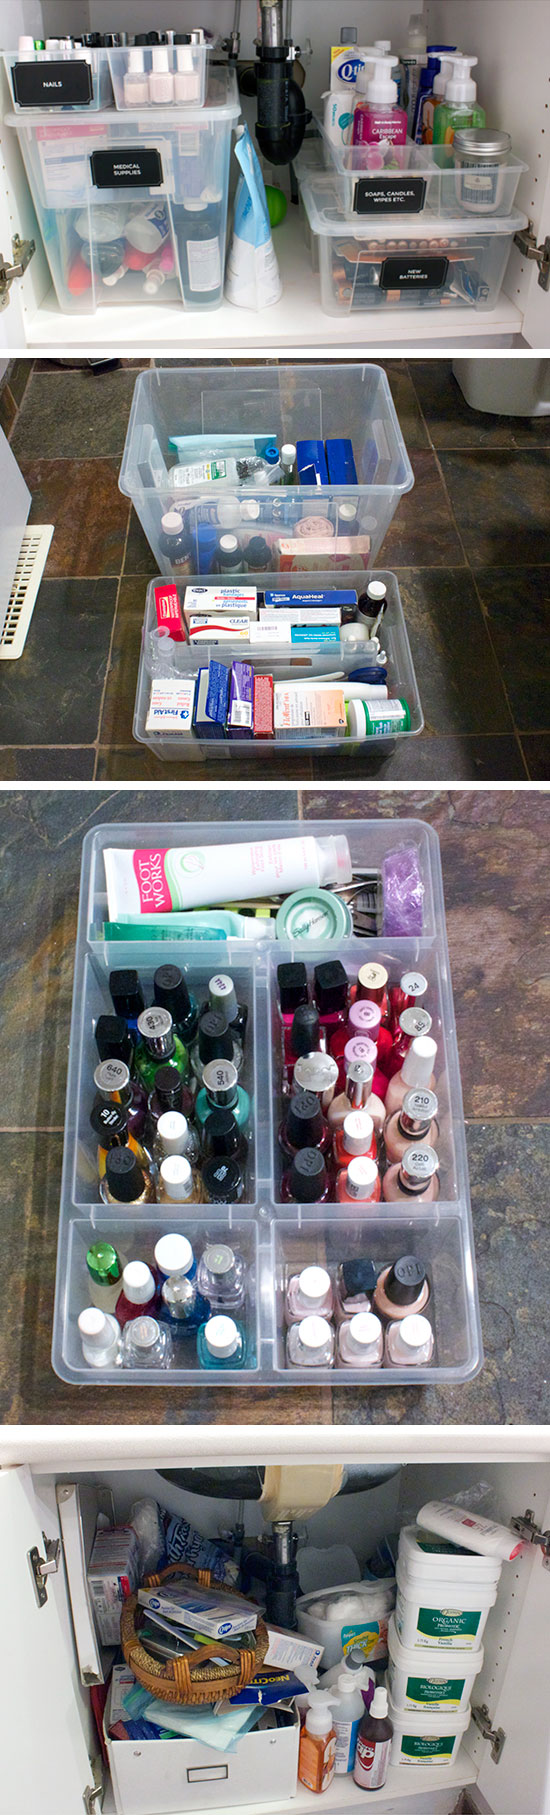 Organize Cabinet with Plastic Containers.